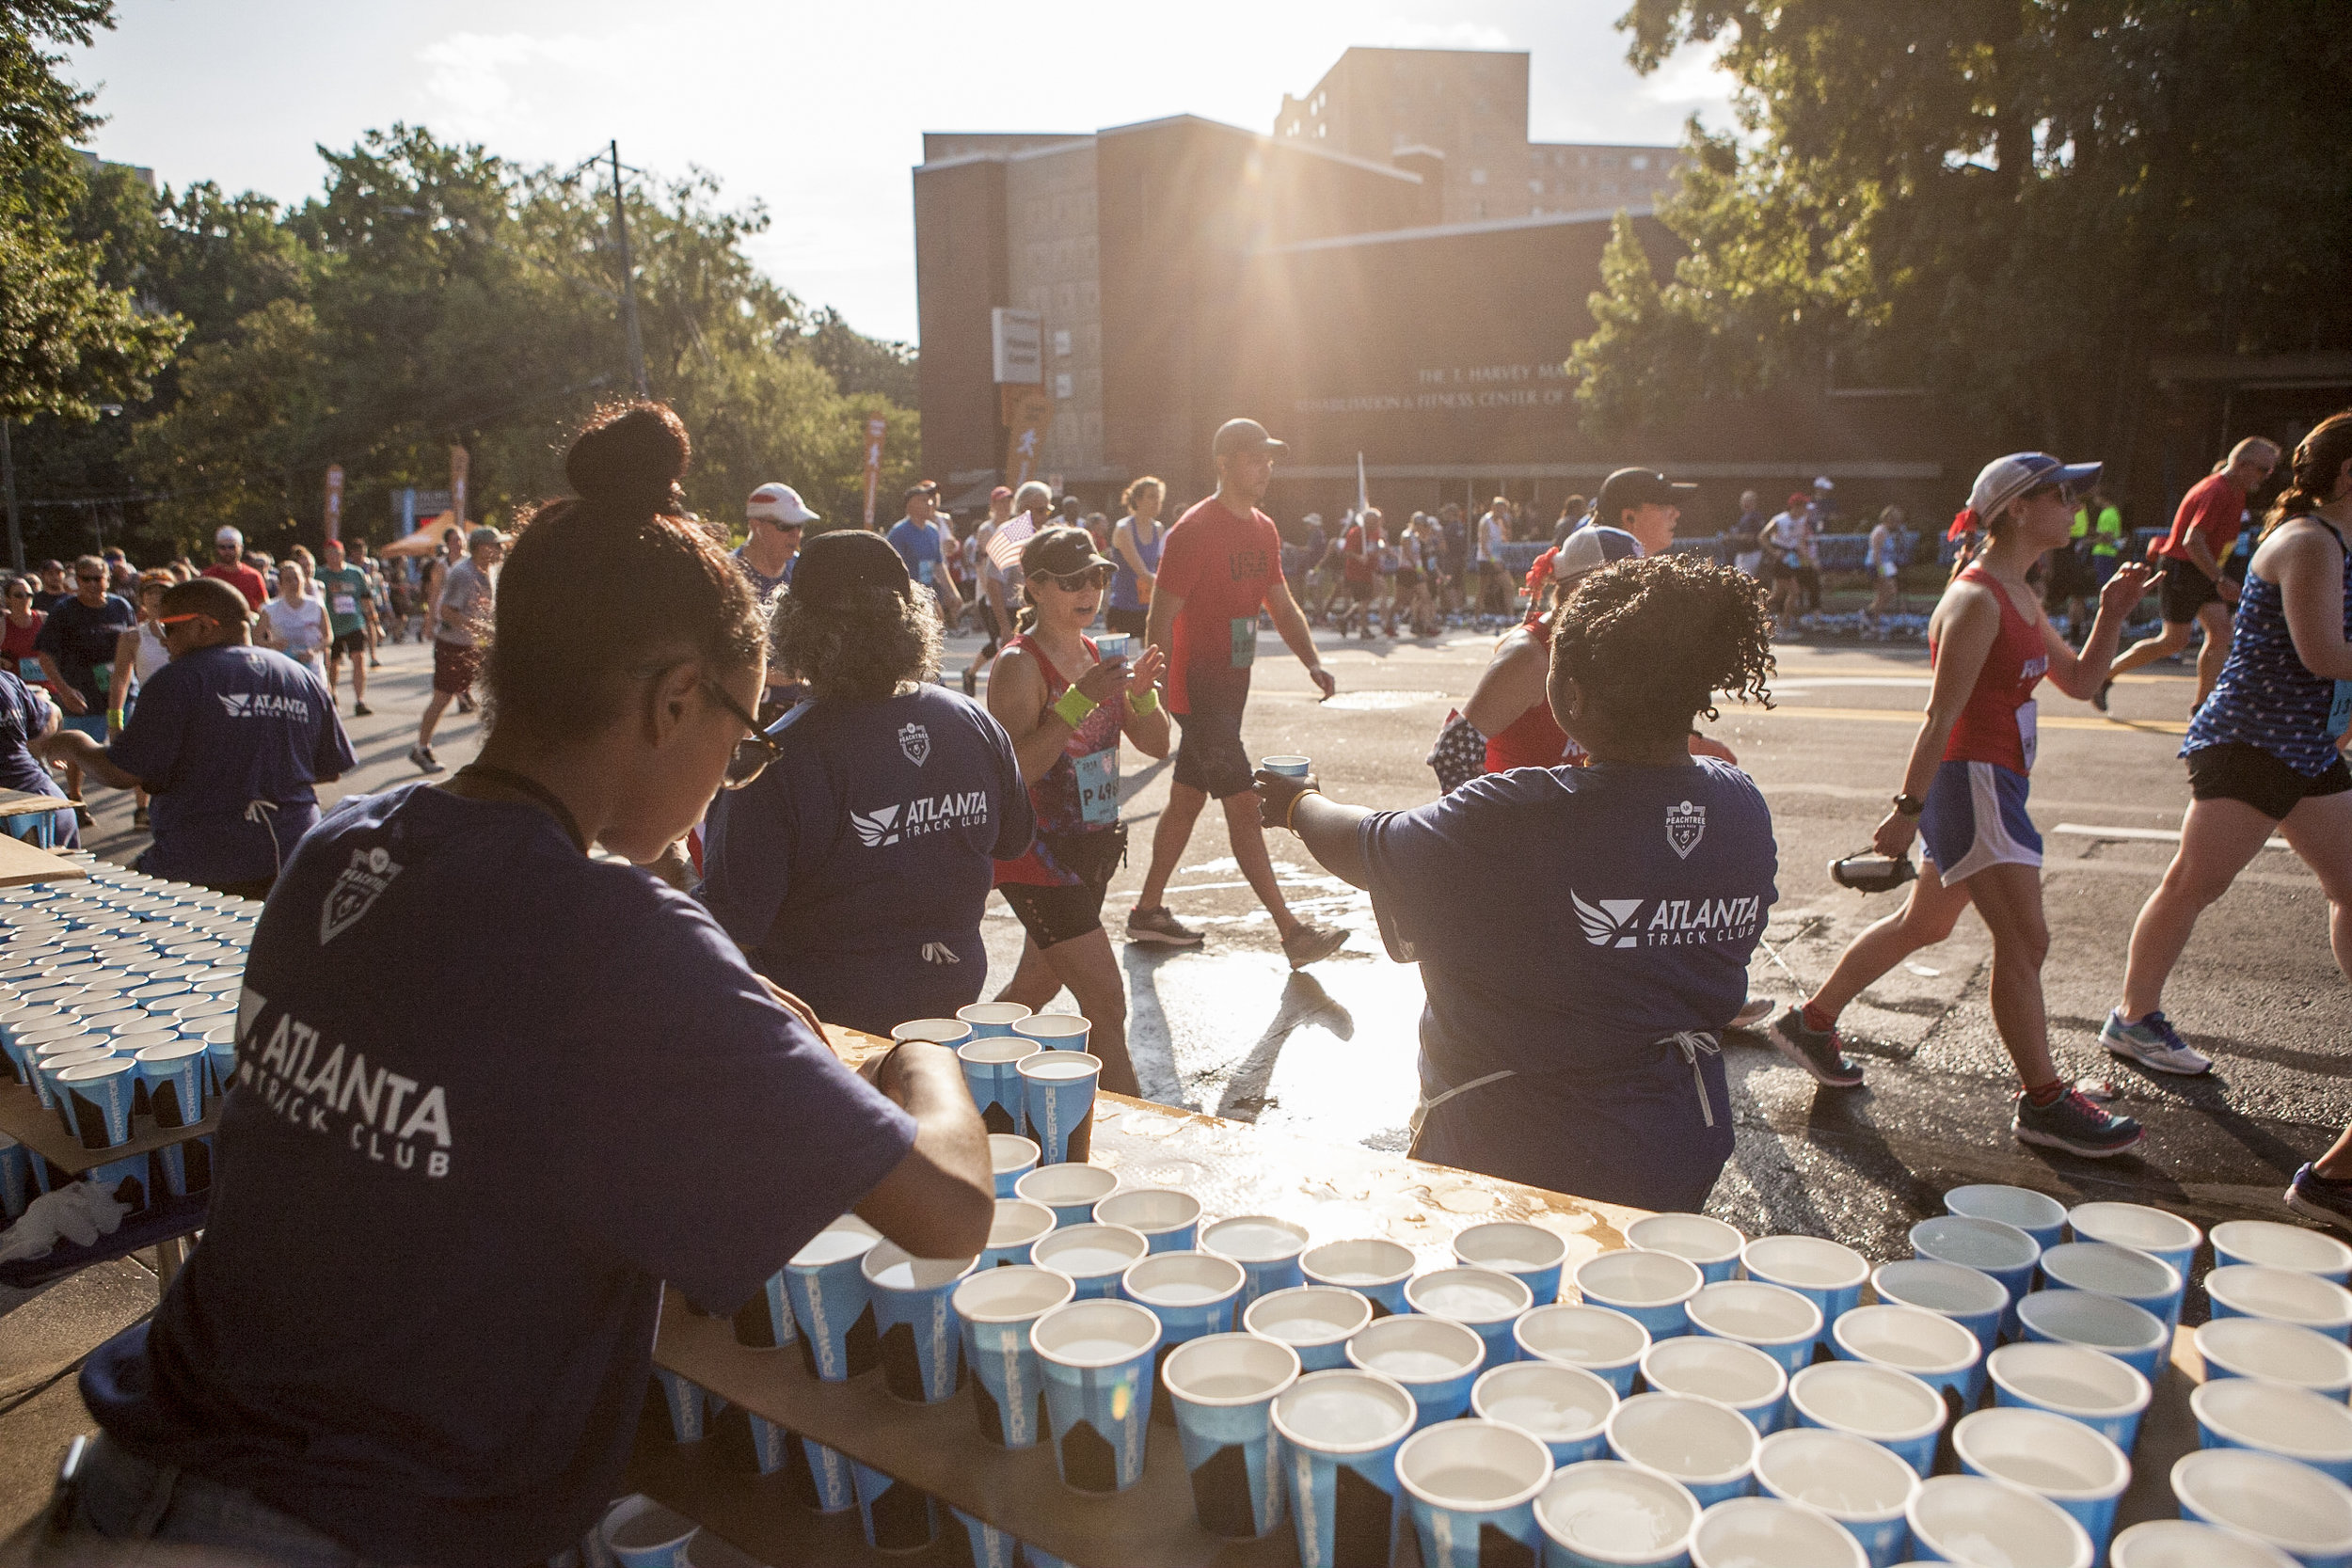 Volunteers handing out water over the years